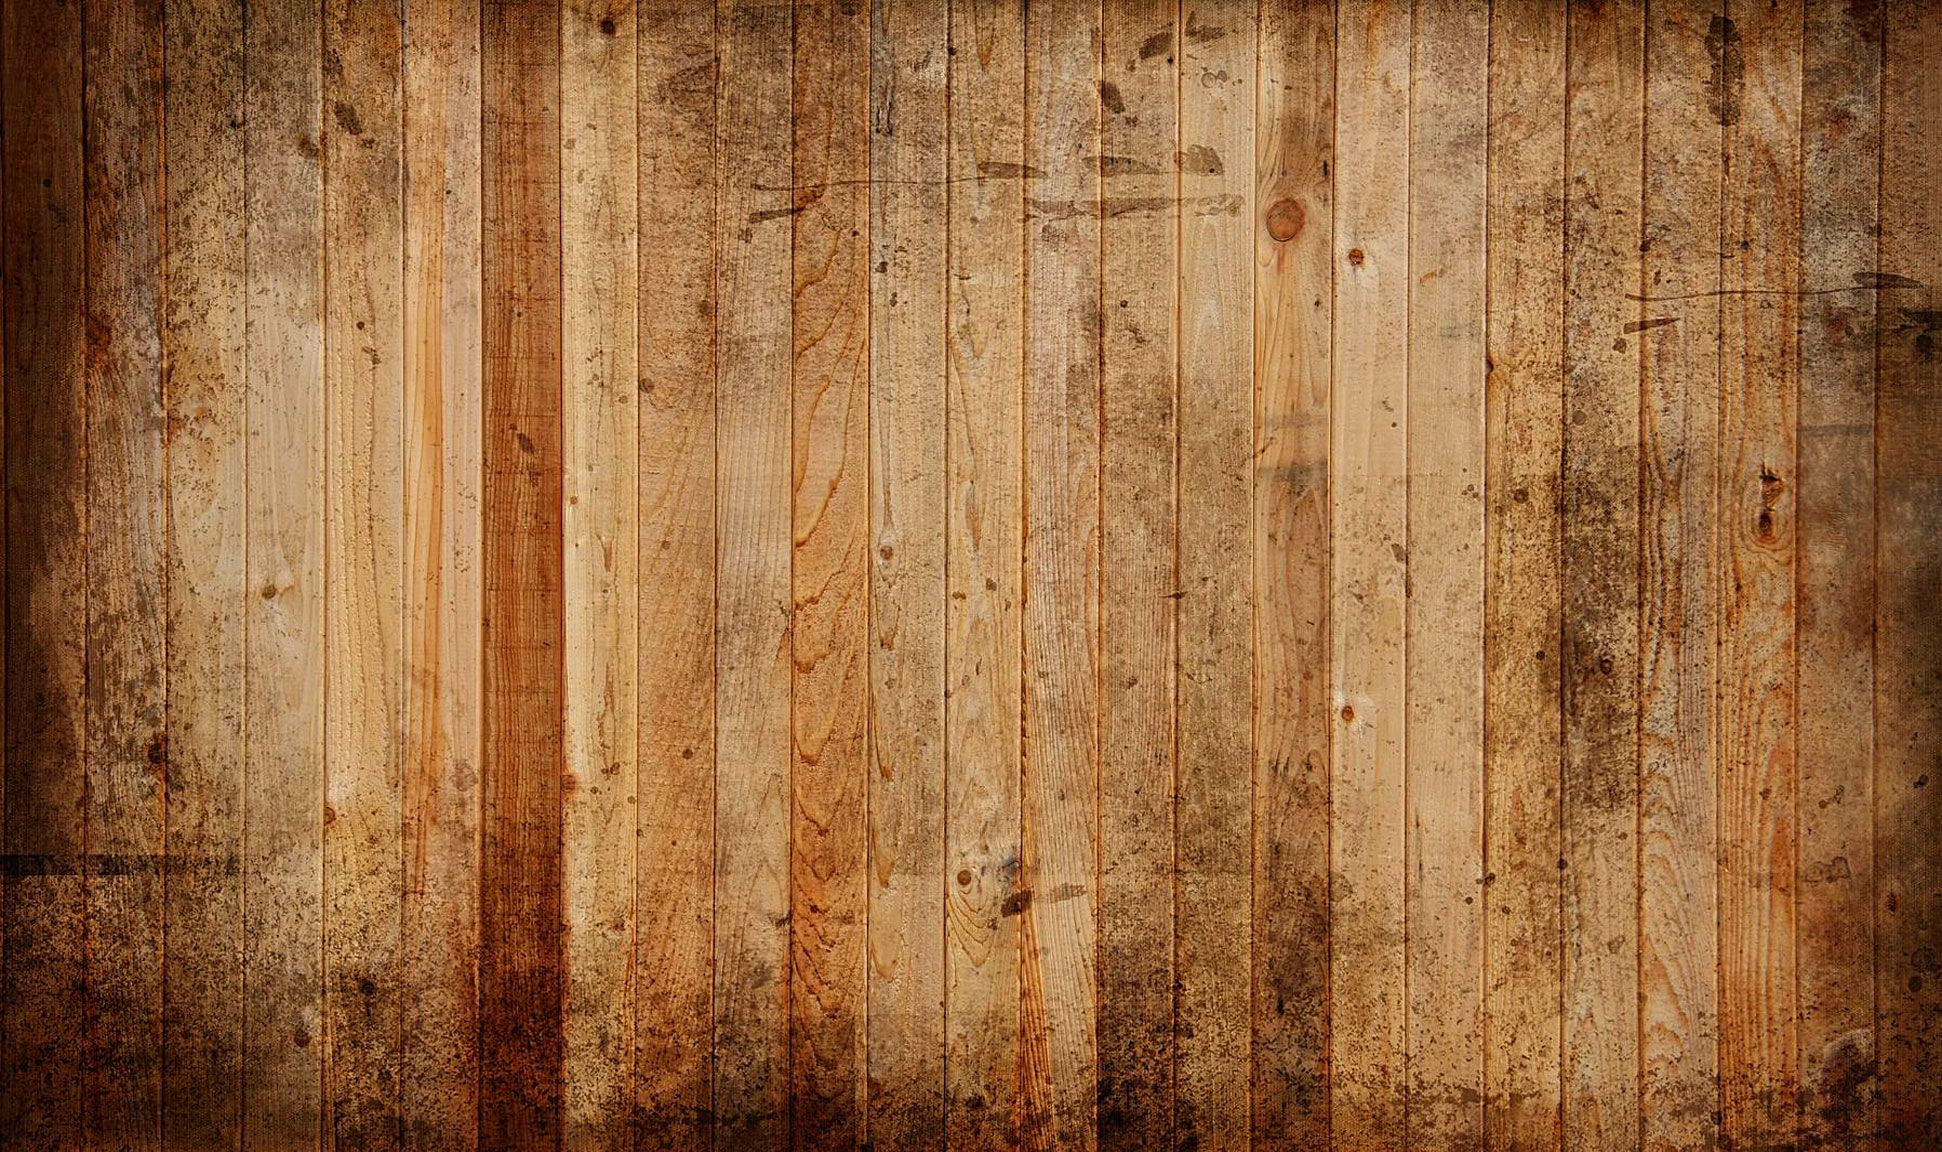 Rustic Barn Wood Background | TRABALHOS | Pinterest | Wood ...